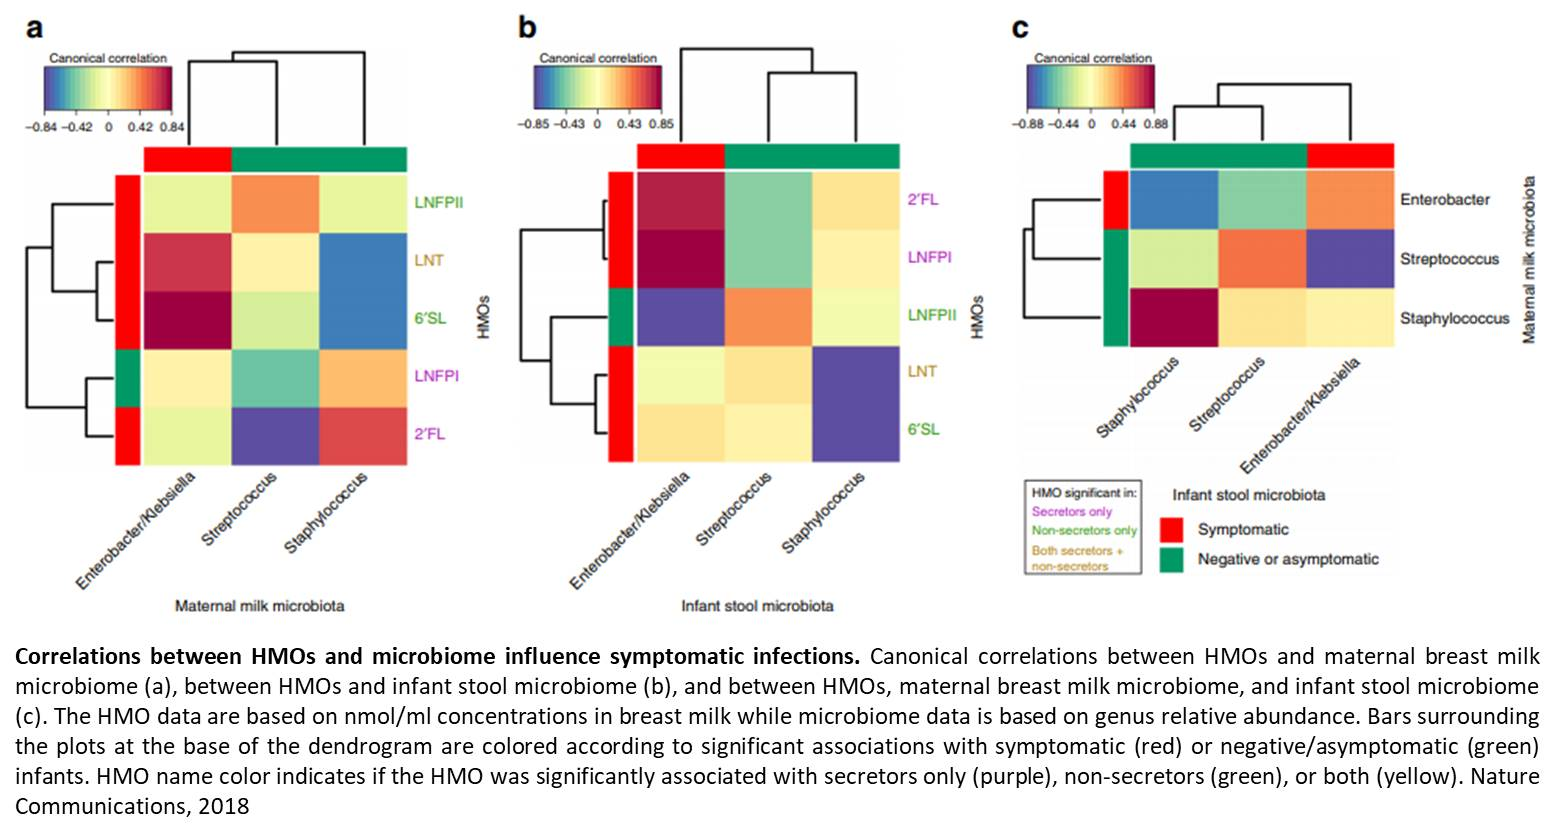 Sugar and microbiome in mother's milk influences neonatal rotavirus infection